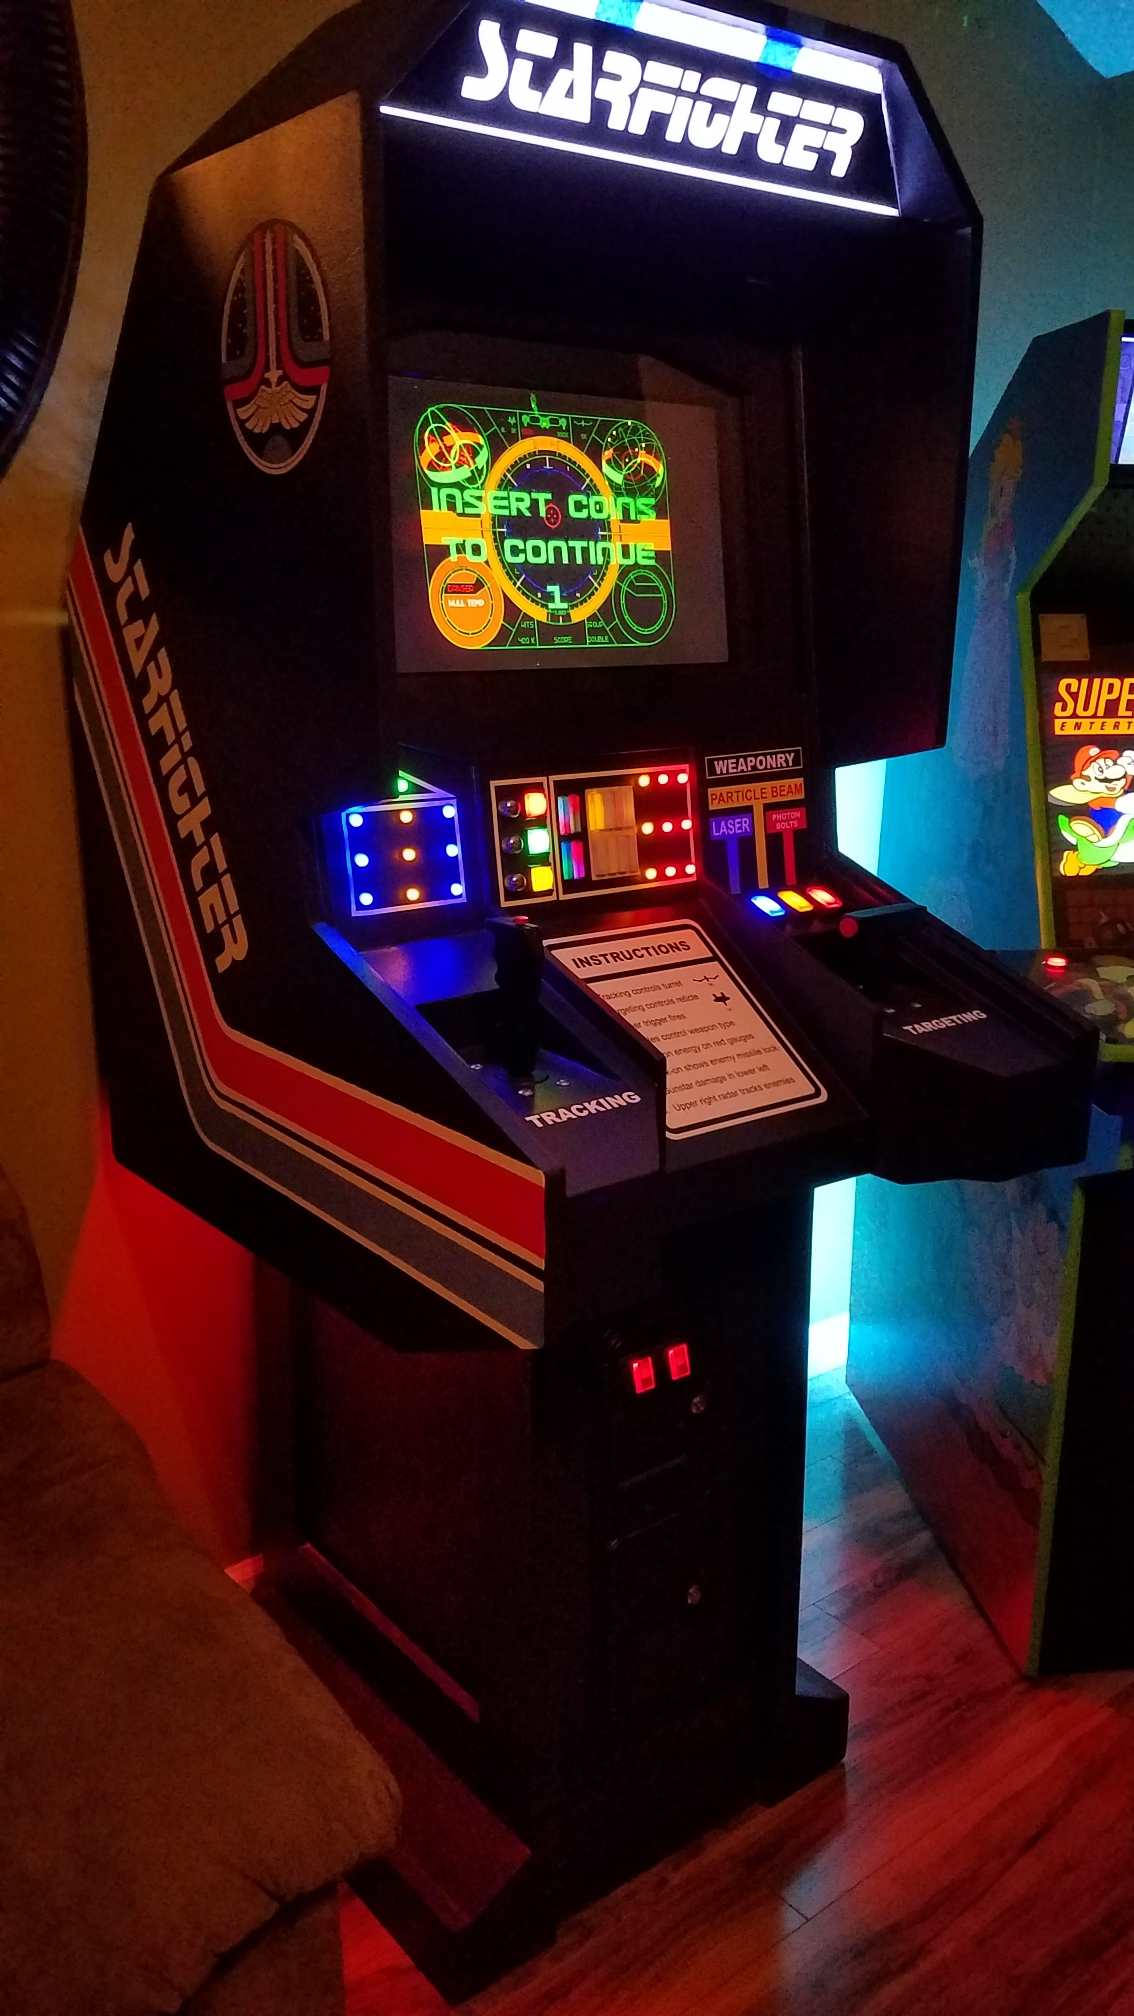 Starfighter Arcade Parts by ifitworks - Thingiverse